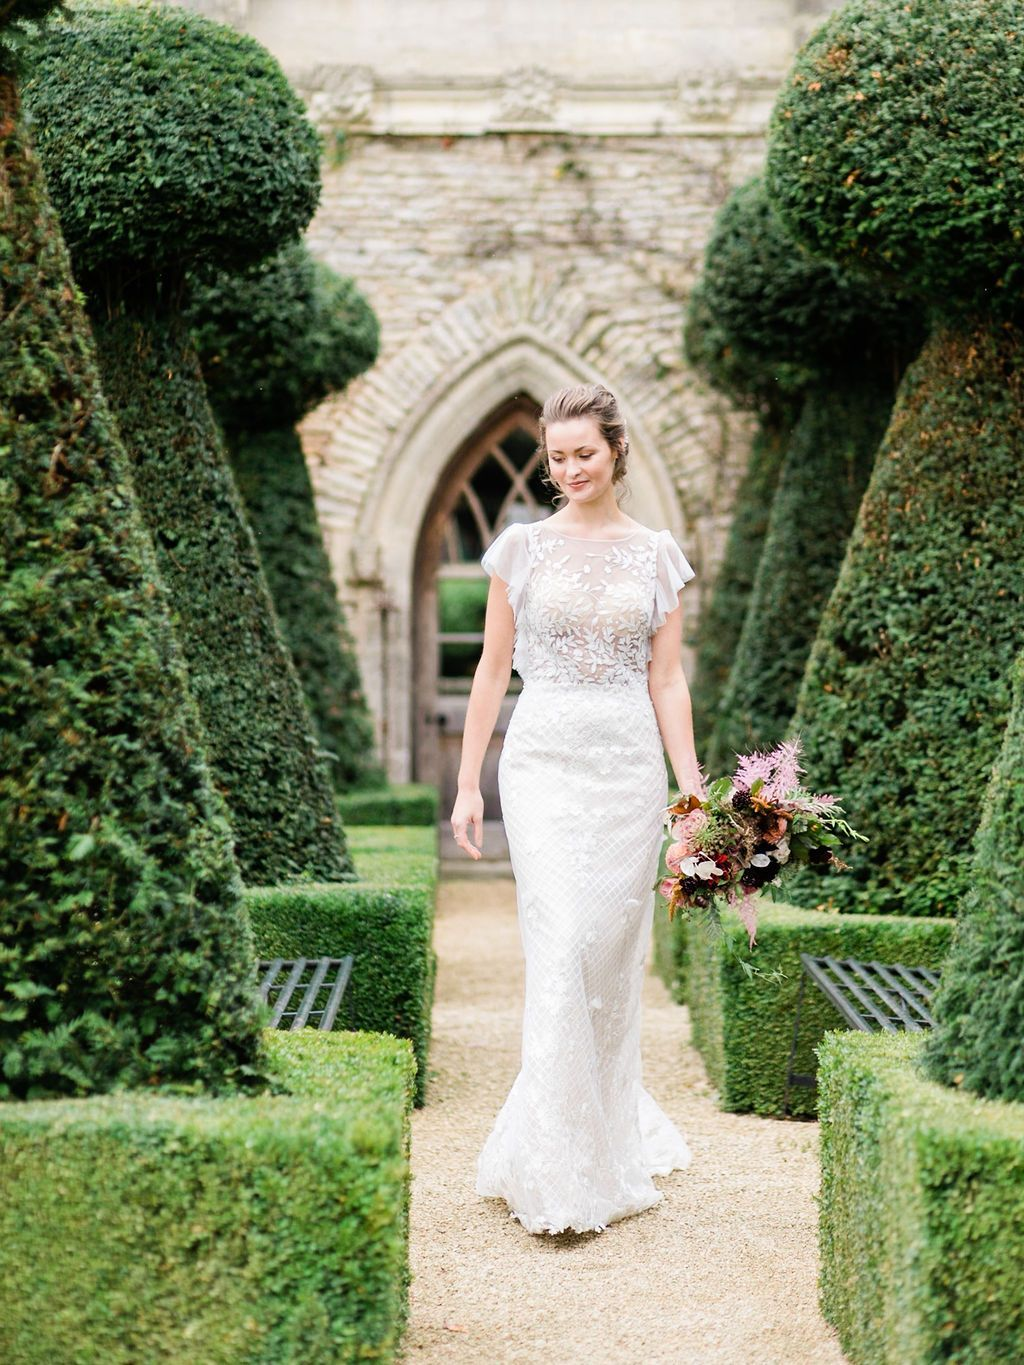 Bridal Styled Shoot at The Lost Orangery -14